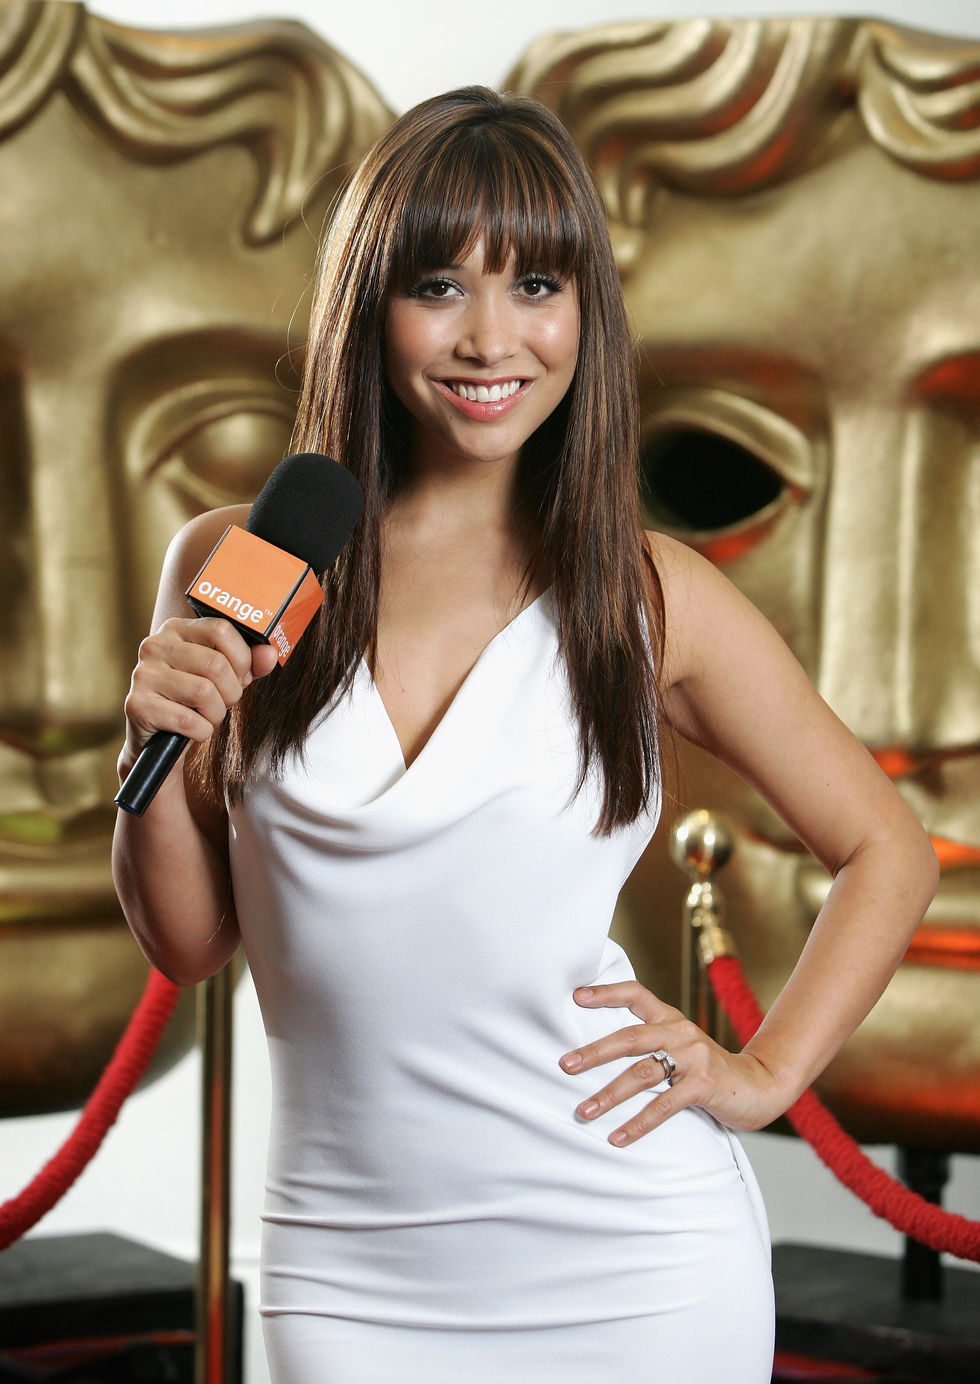 myleene-klass-orange-bafta-photocall-in-london-01